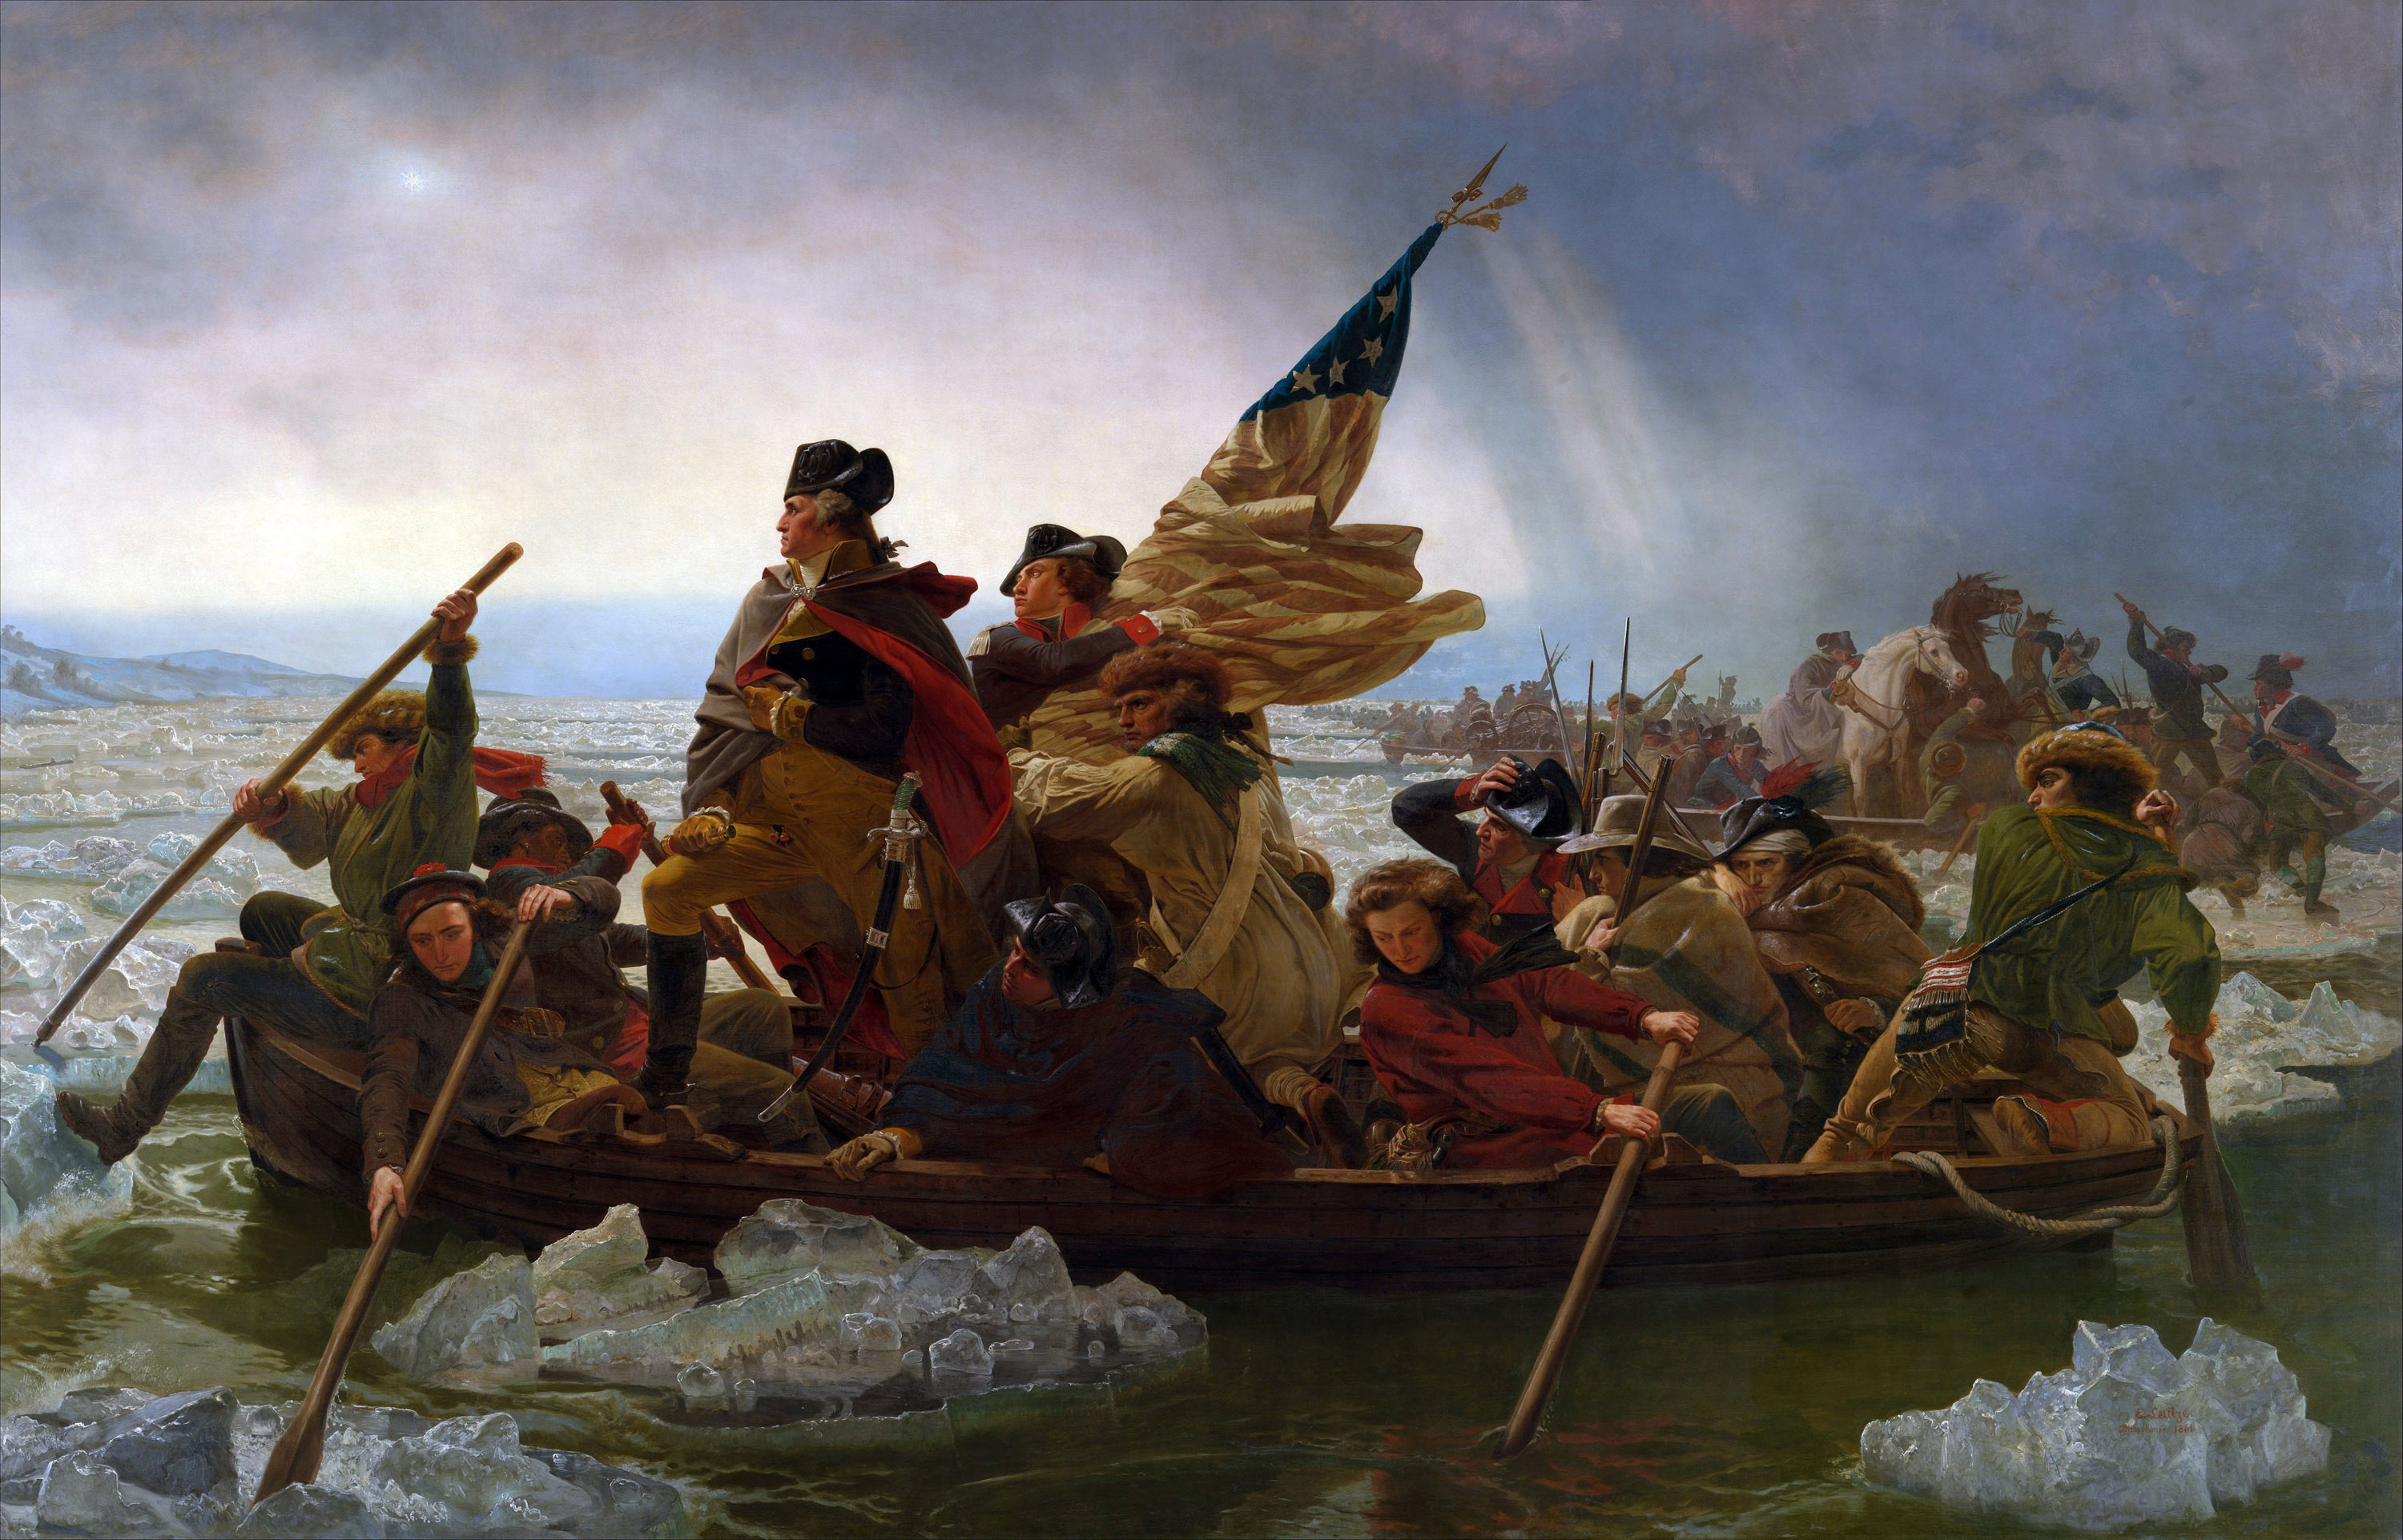 1-2-186-25-wash-crossing_the-delaware_by_emanuel_leutze_mma-1851